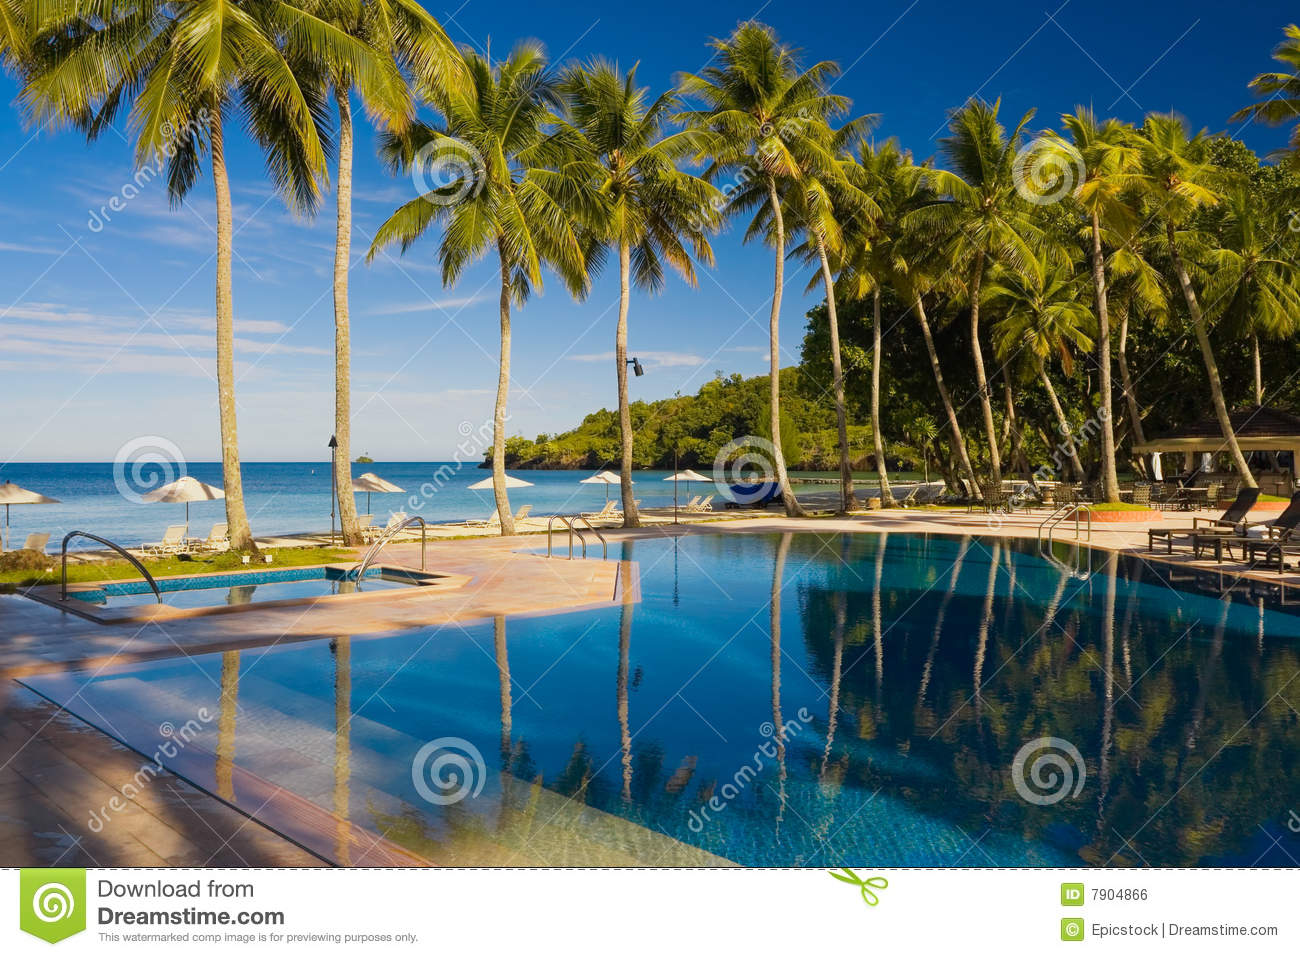 Vacation Resort Pool With Palm Trees Royalty Free Stock